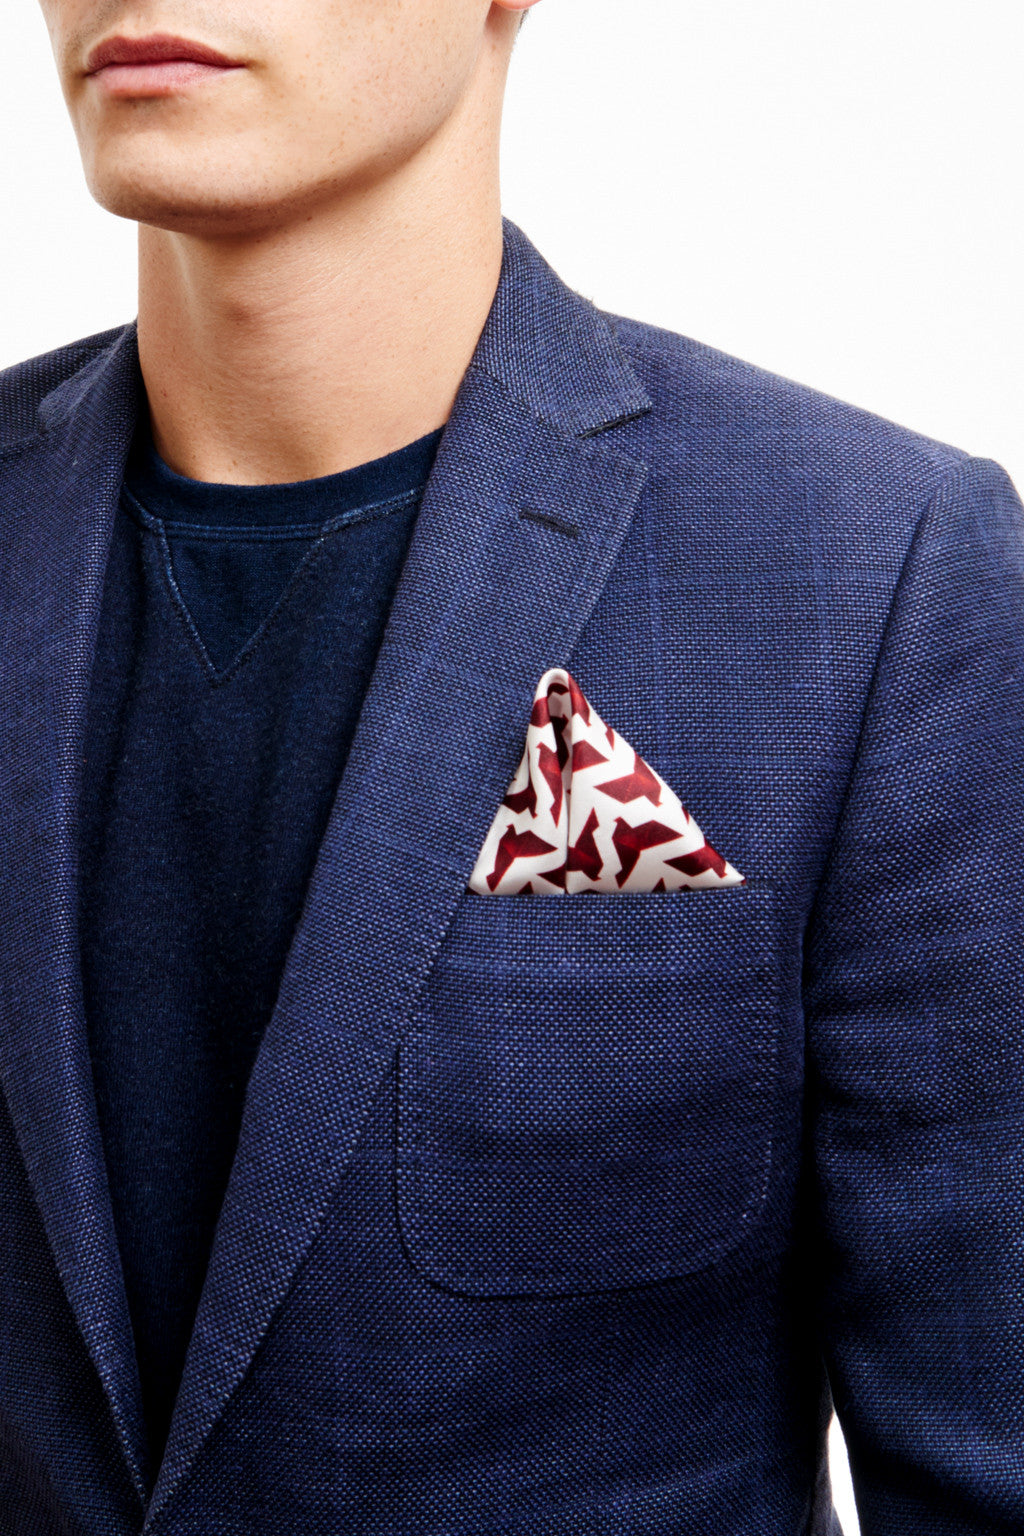 RED ORIGAMI BIRD POCKET SQUARE